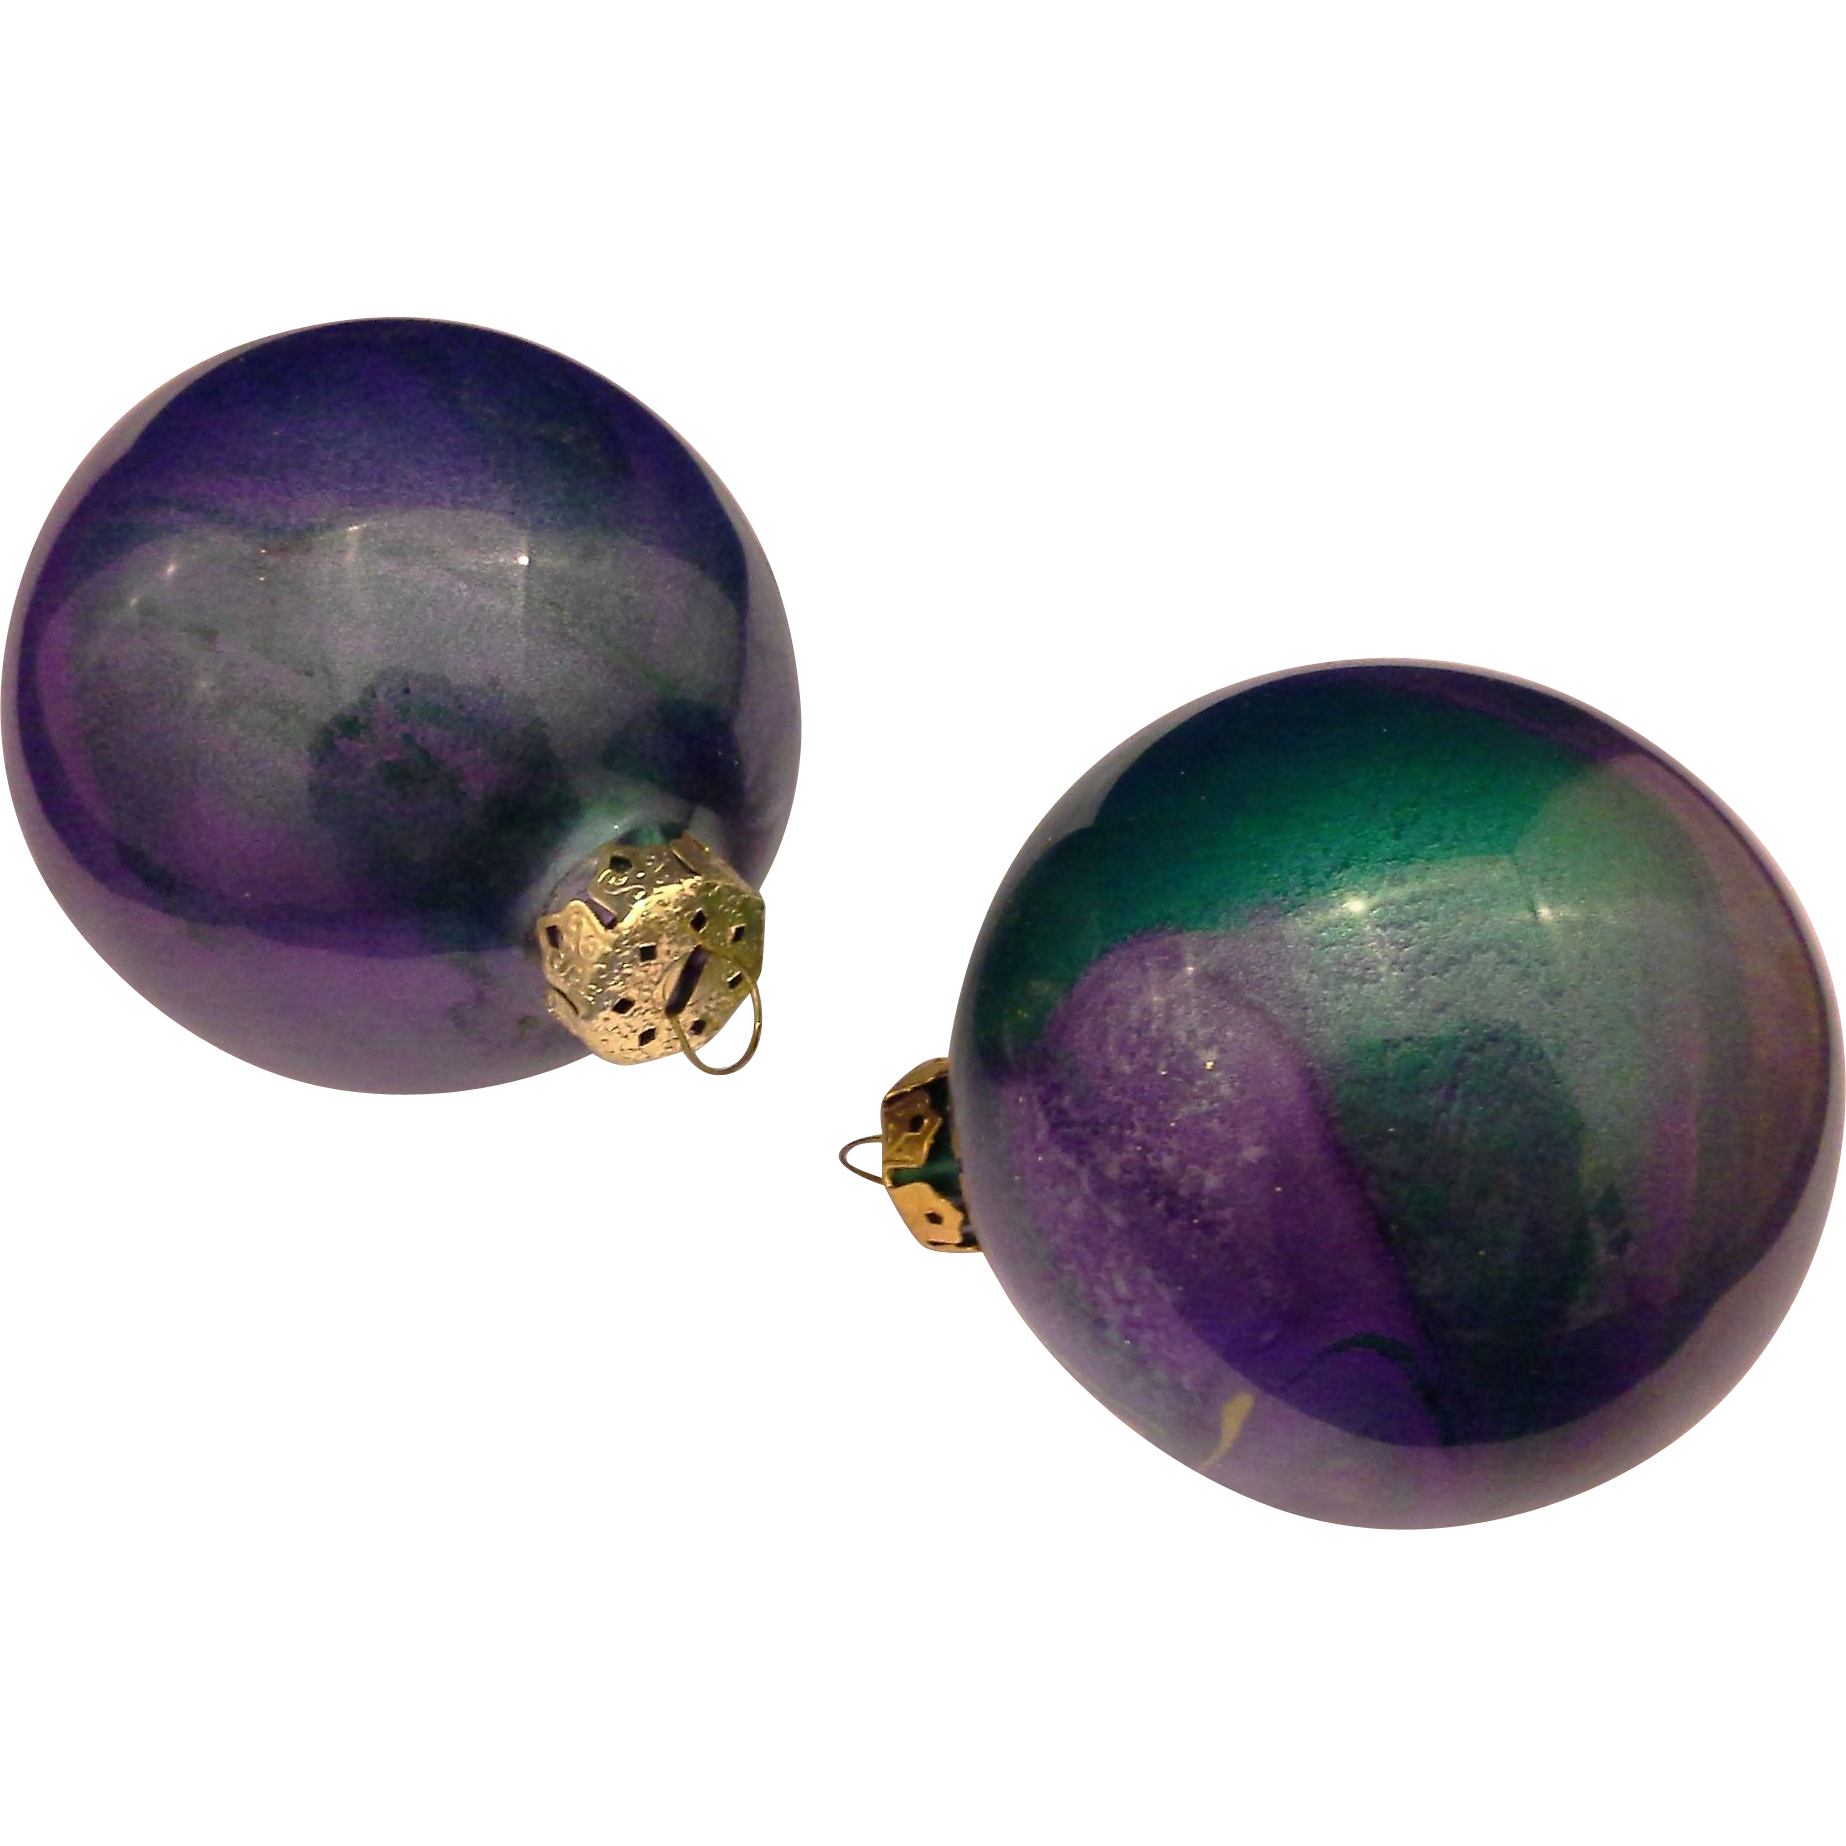 Lavender christmas ornaments - Purple Green Oil Slick Painted Christmas Ornaments Pair